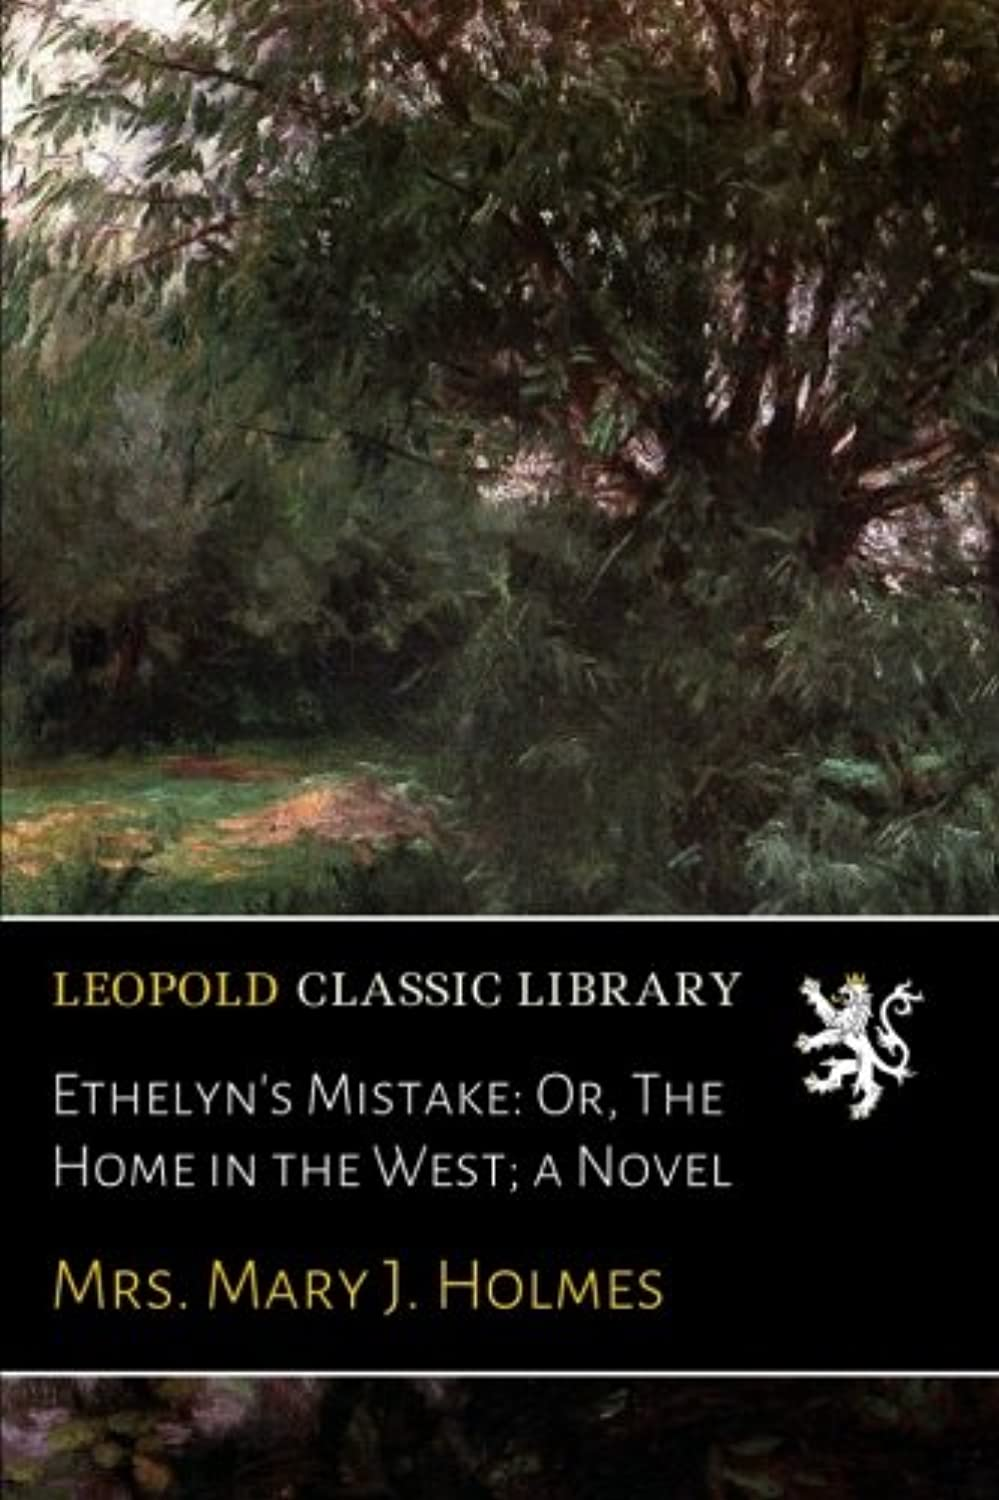 Ethelyn's Mistake: Or, The Home in the West; a Novel